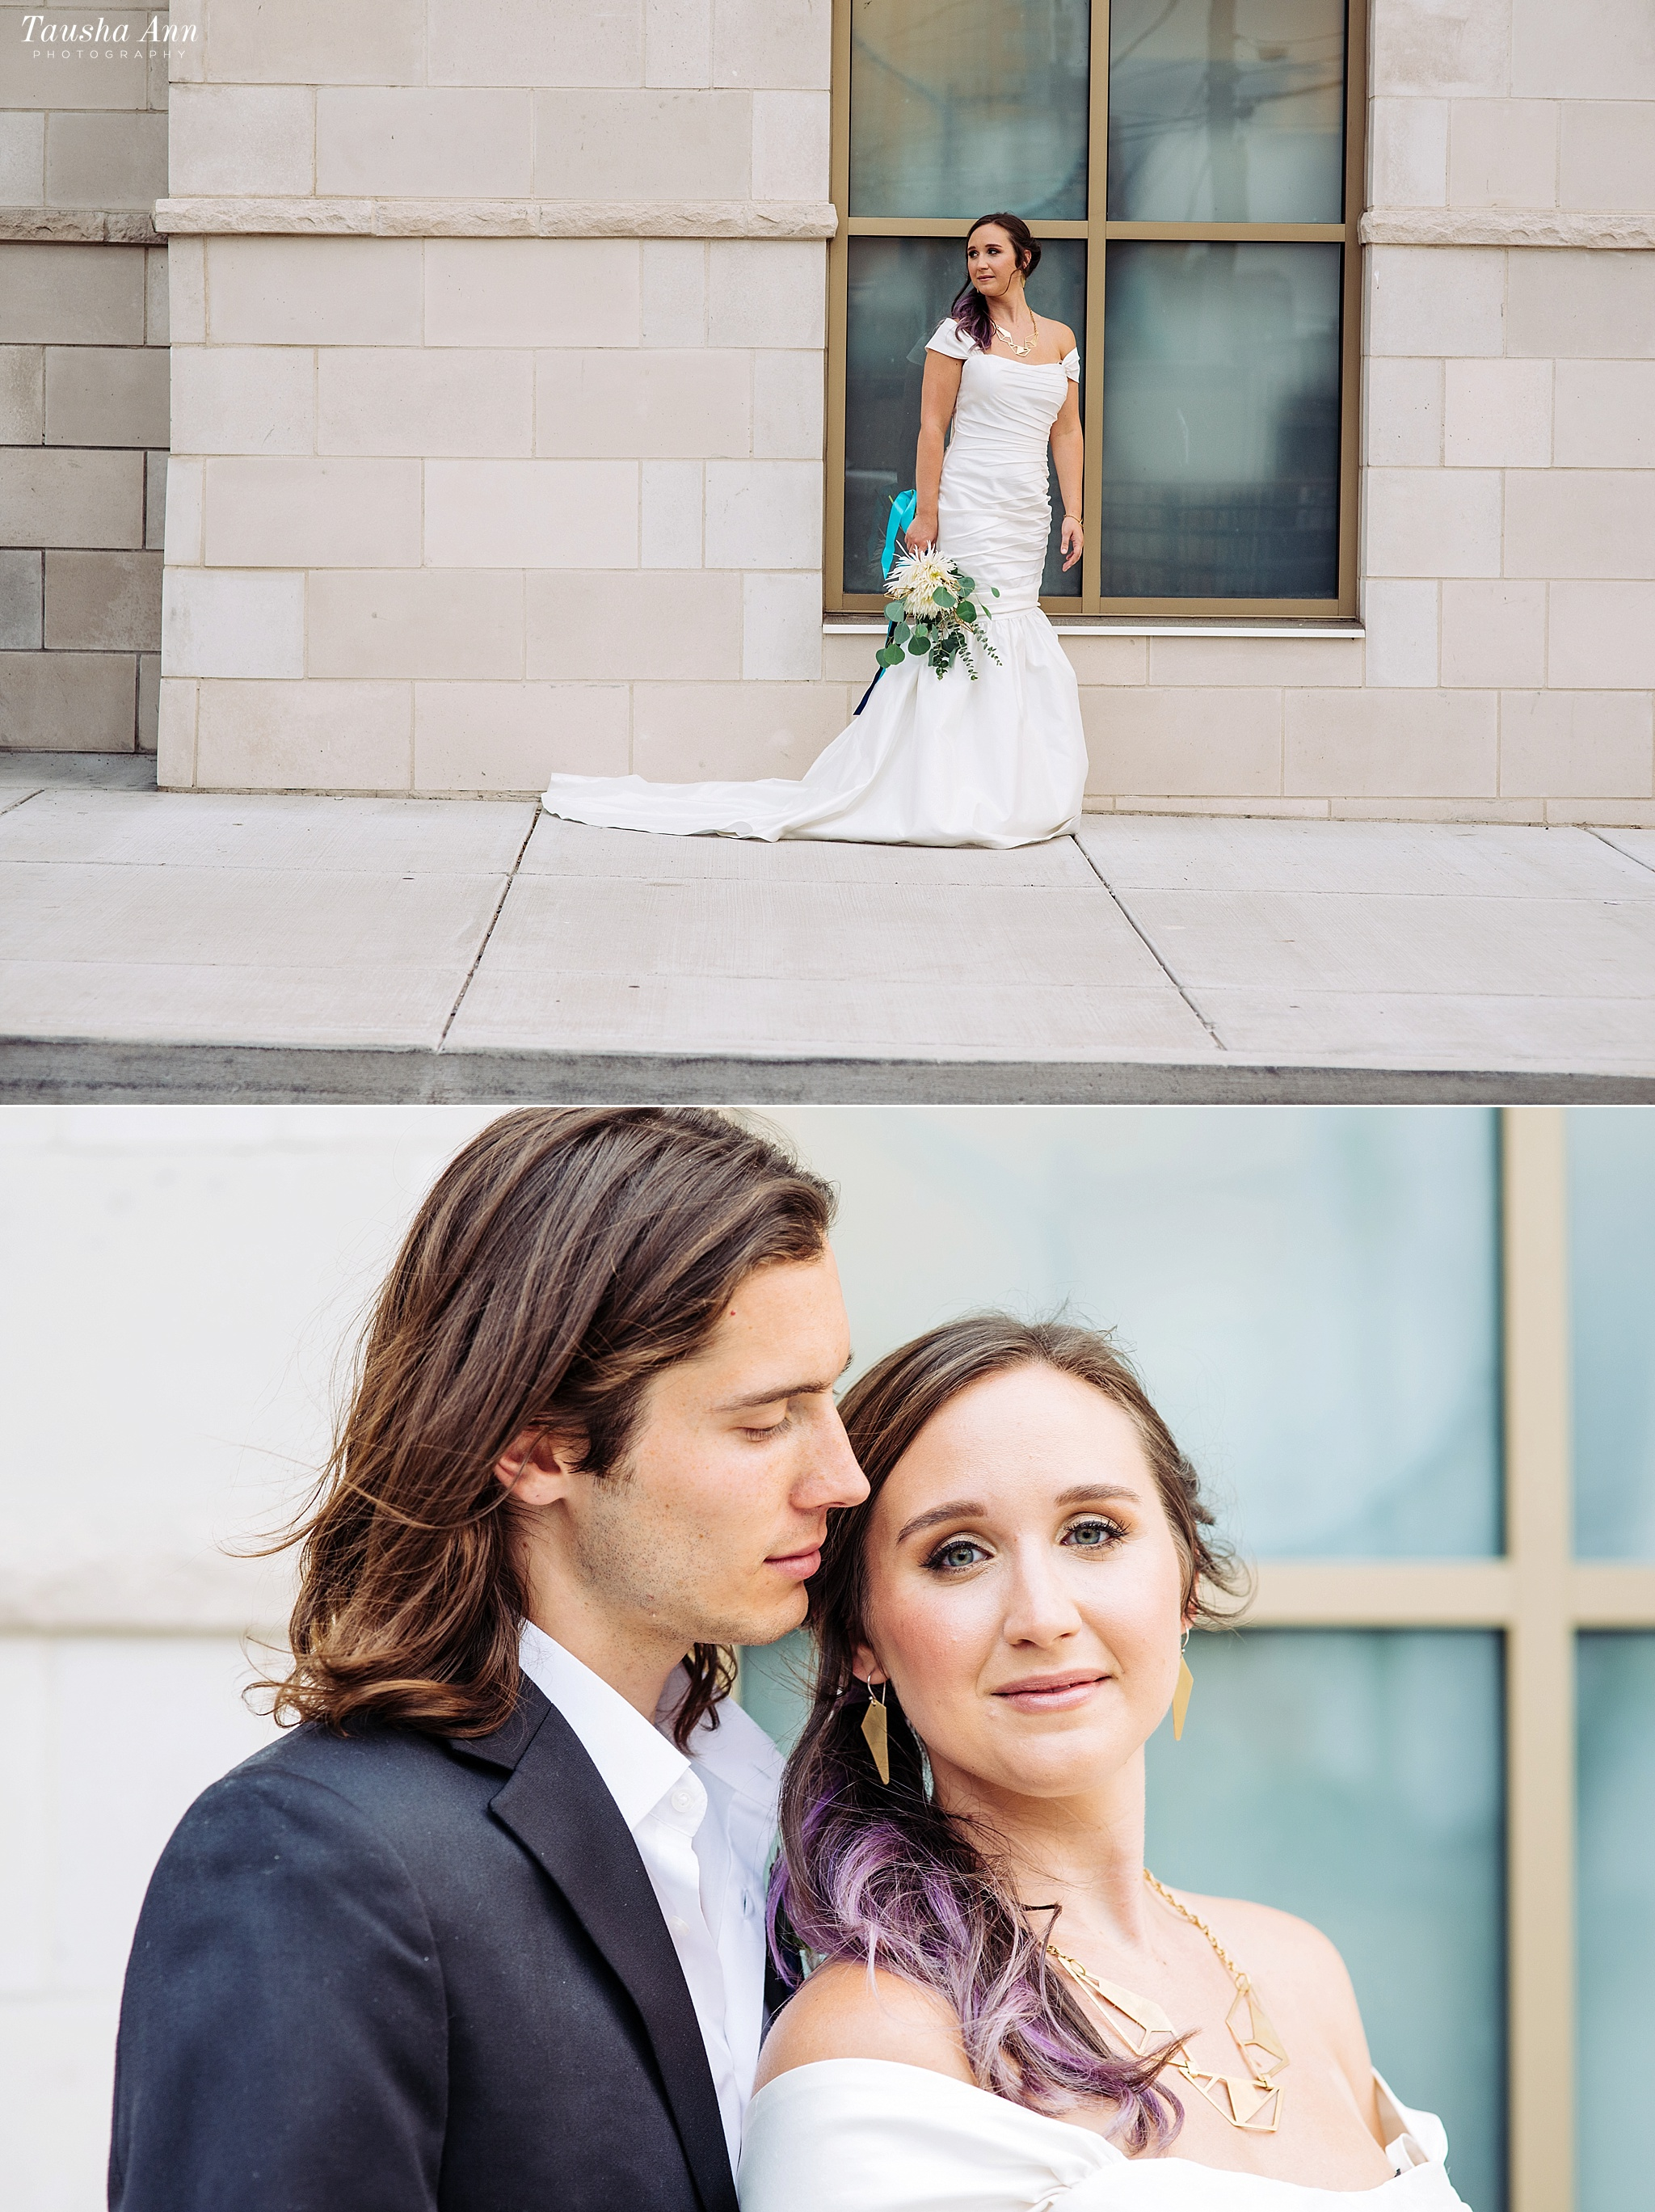 Nashville_Franklin_Photographer_Tausha_Ann_Photography_Styled_Nashville_Wedding_Southern_Inspration_Pinterest_Fabulous_Frocks_Aimee_Siegel_Paige_Barbee_Jewelry_0016